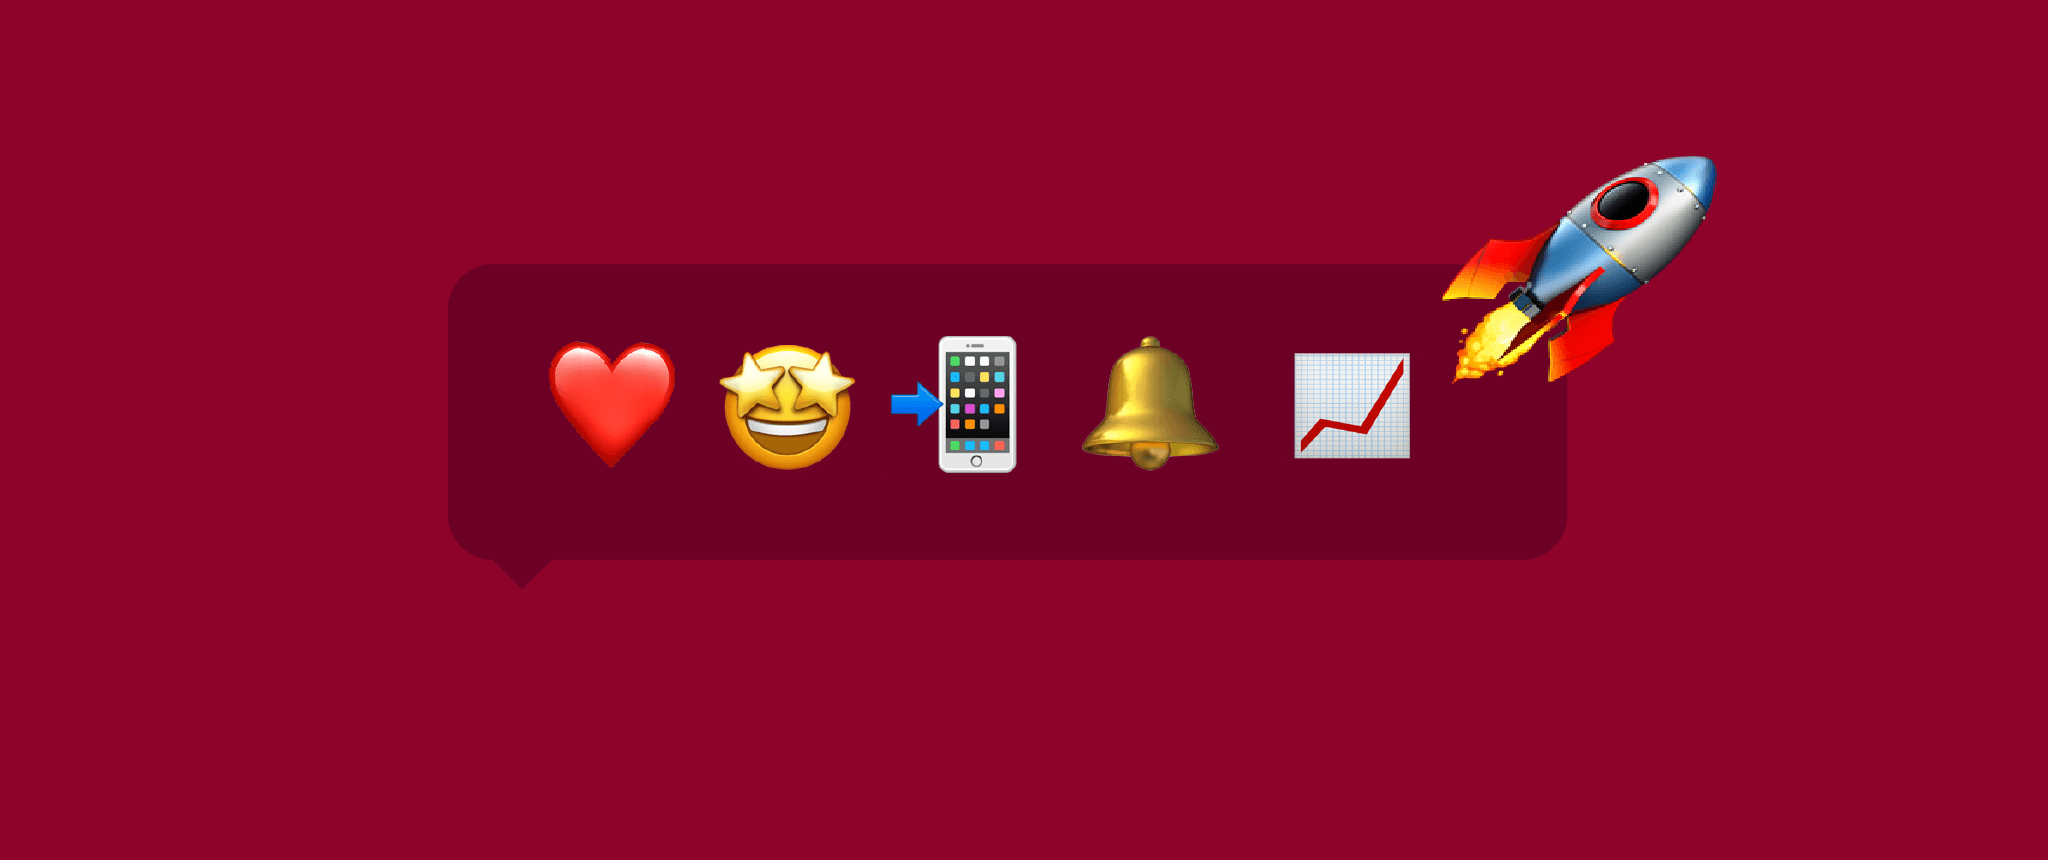 Add Emojis to Push for Powerful User Engagement (Infographic)